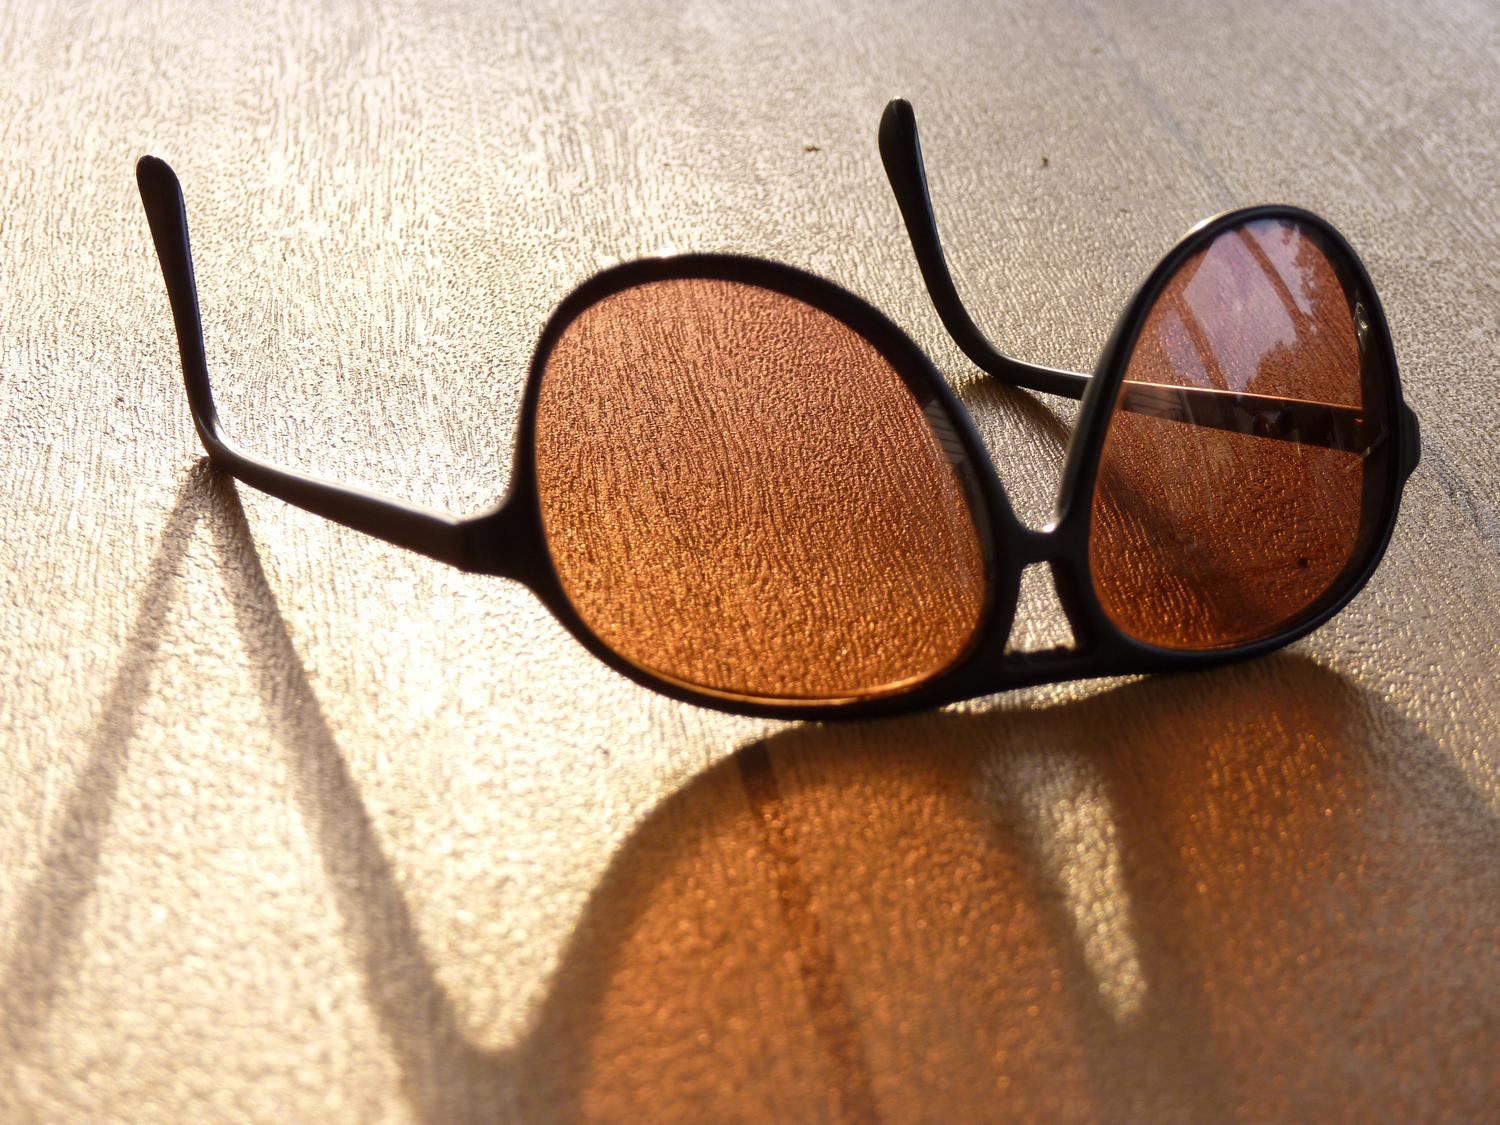 - Sunglasses in a summer light <br>--- Click to see ORIGINAL --- - - Sunglasses - Panasonic DMC-fz35 - summer - Tony Karp, design, art, photography, techno-impressionist, techno-impressionism, aerial photography , drone , drones , dji , mavic pro , video , 3D printing - Books -